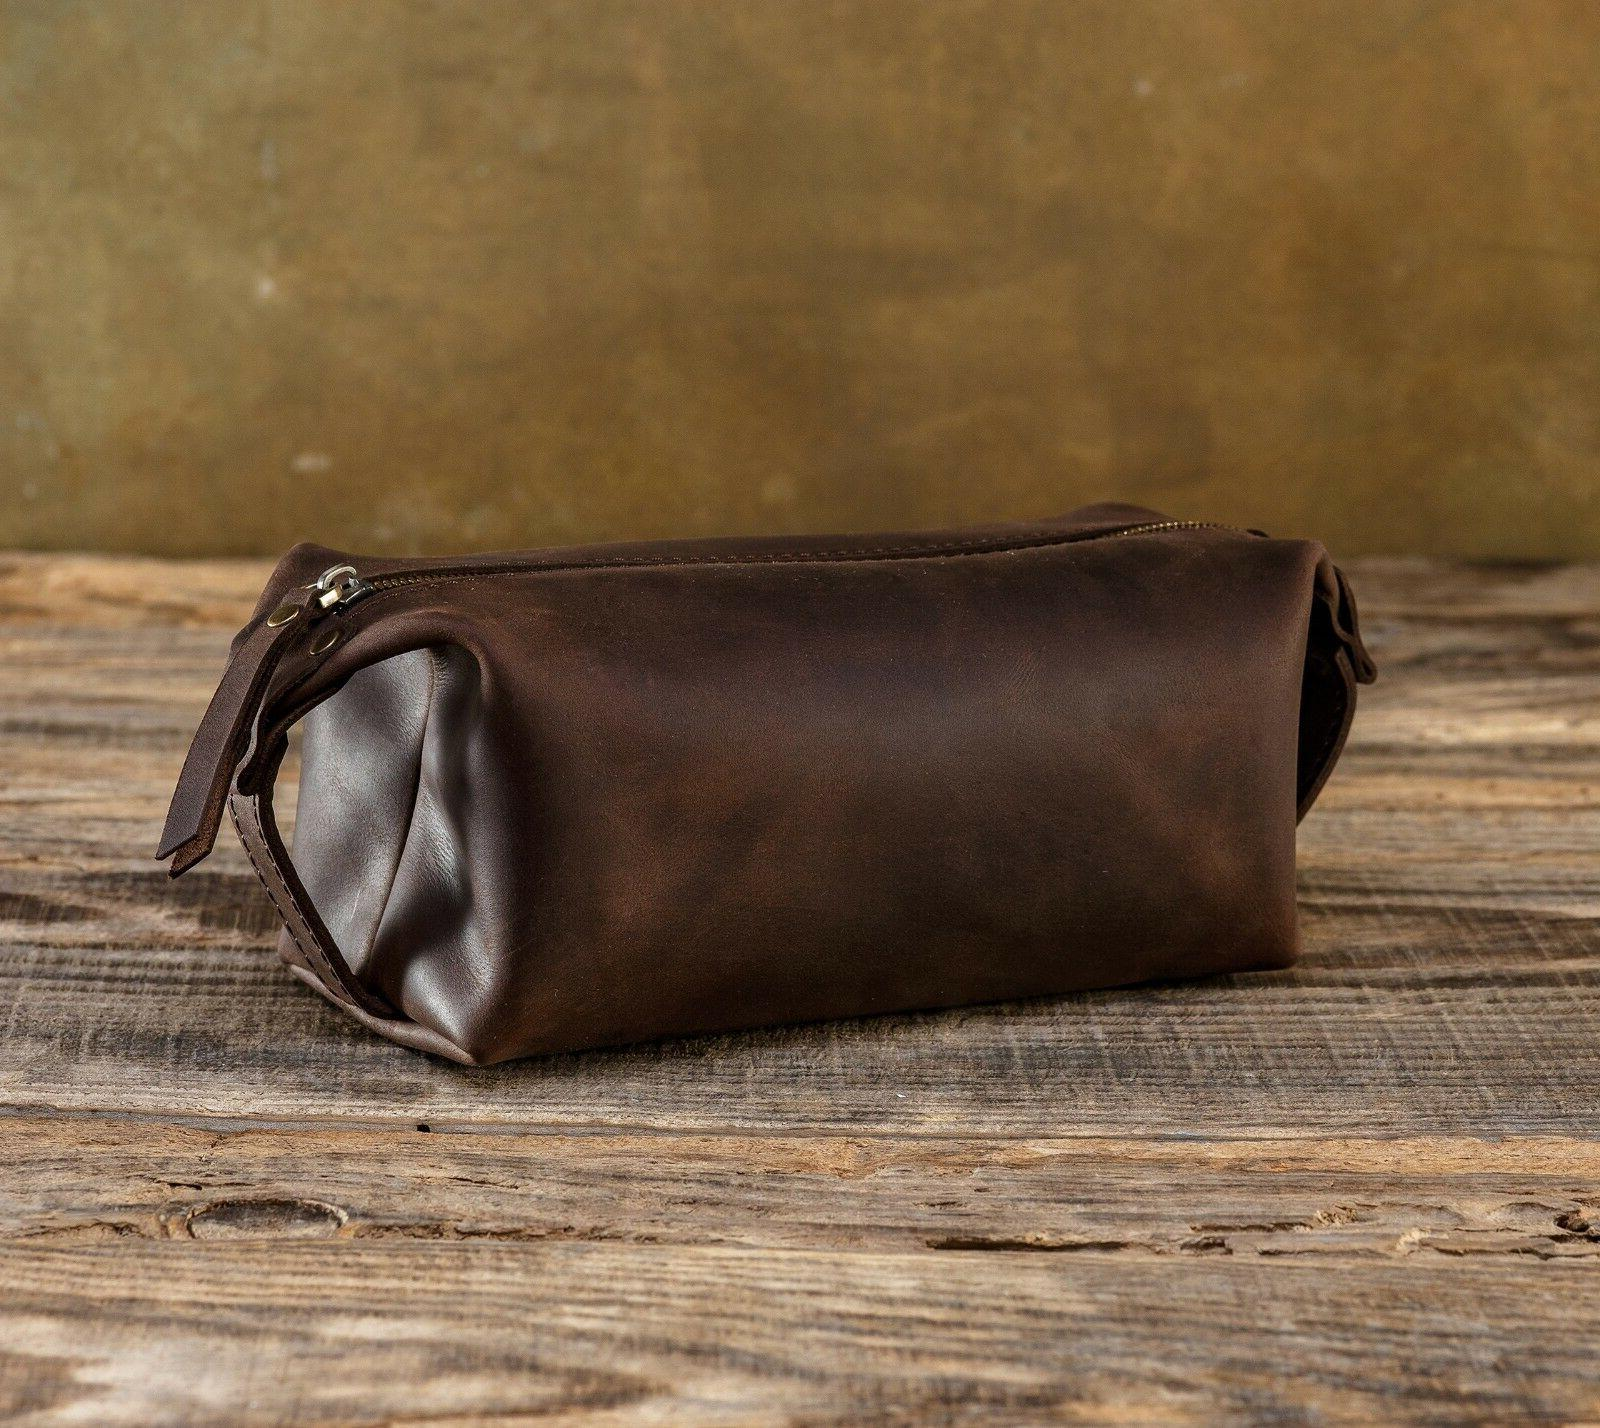 Leather Toiletry Bag Leather Dopp Kit Shaving Bag Travel Bag